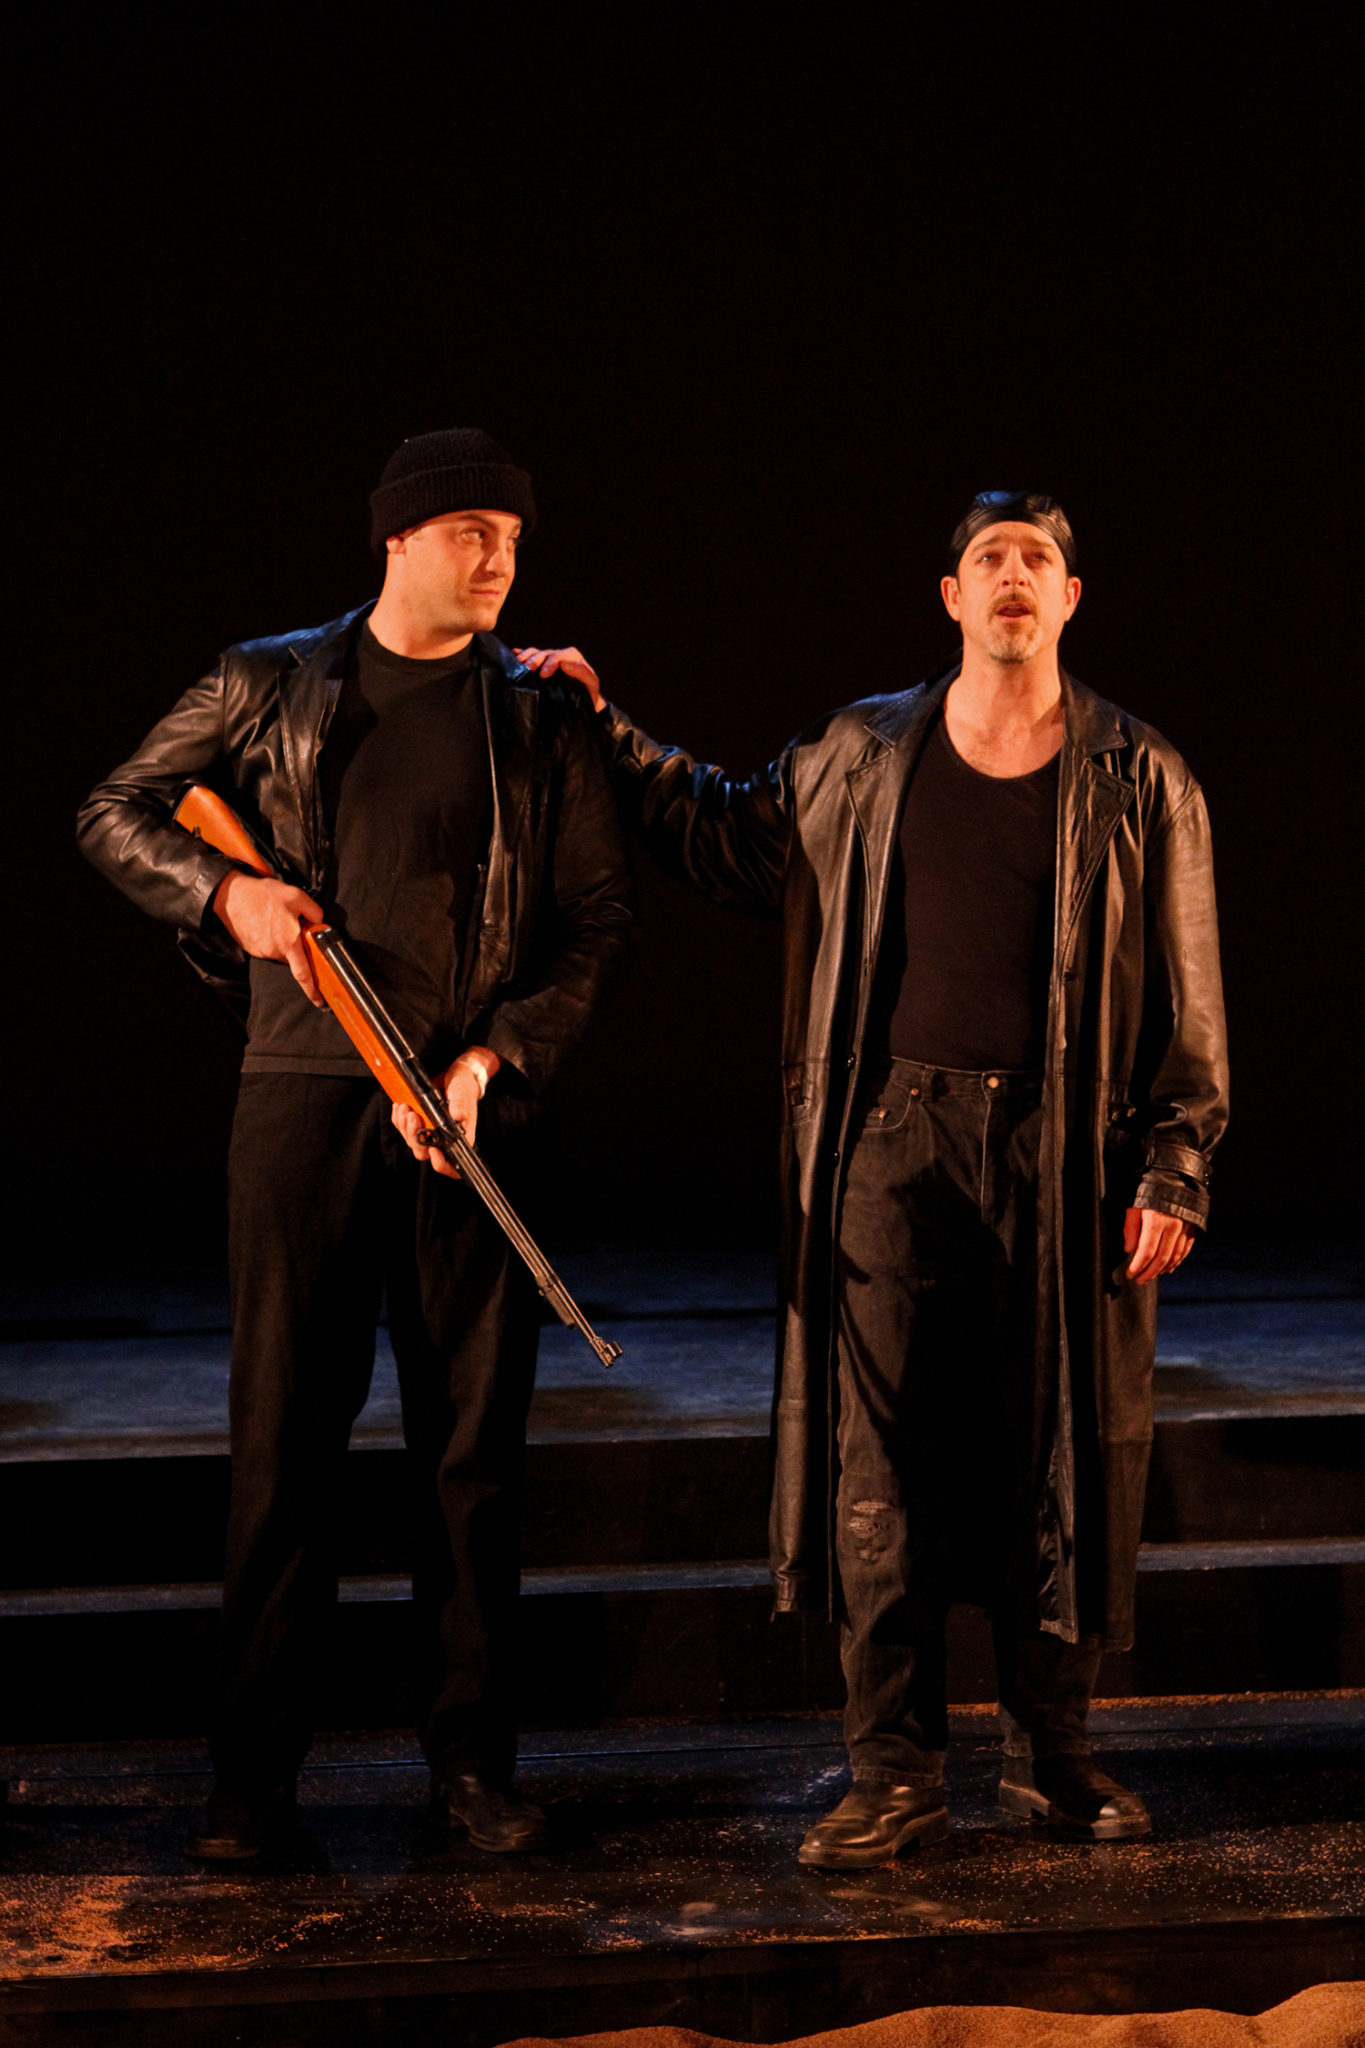 """Chris Maslen as Menas and Mike Dooly as Pompey in Seattle Shakespeare Company's 2012 production of """"Antony and Cleopatra."""" Photo by John Ulman."""